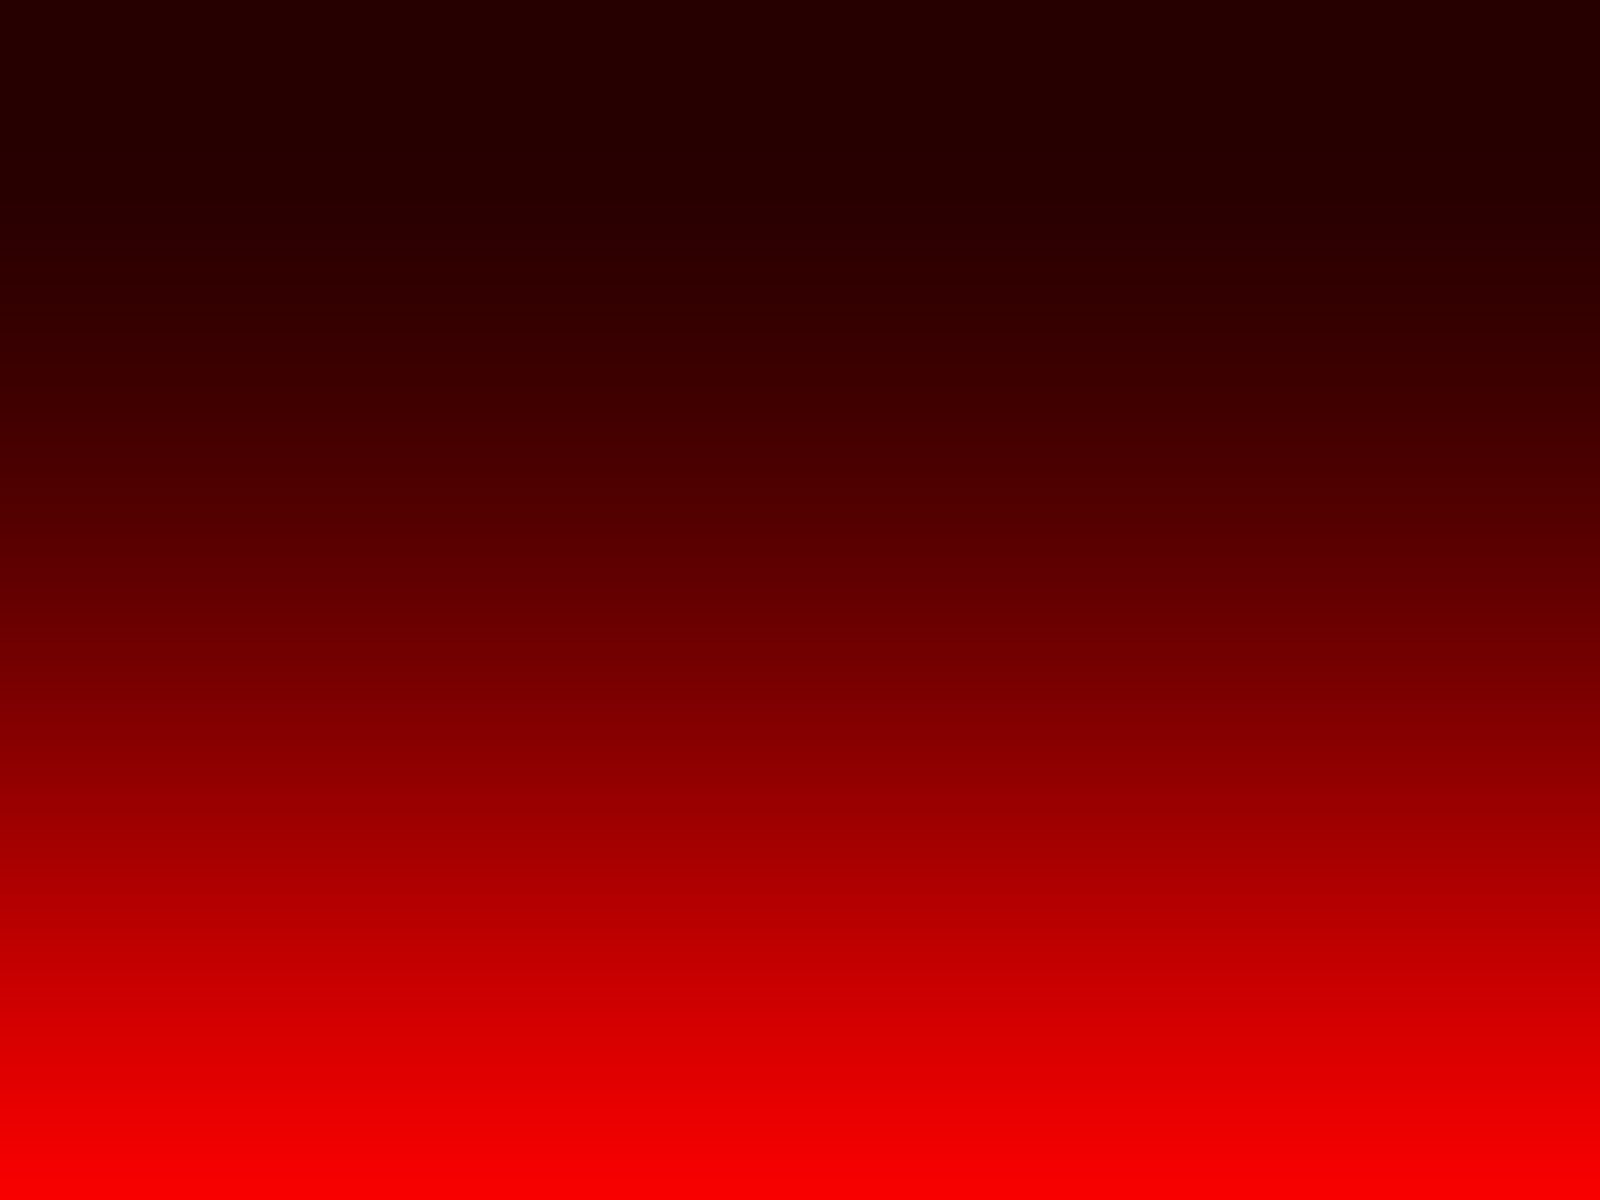 red and black gradient - photo #26